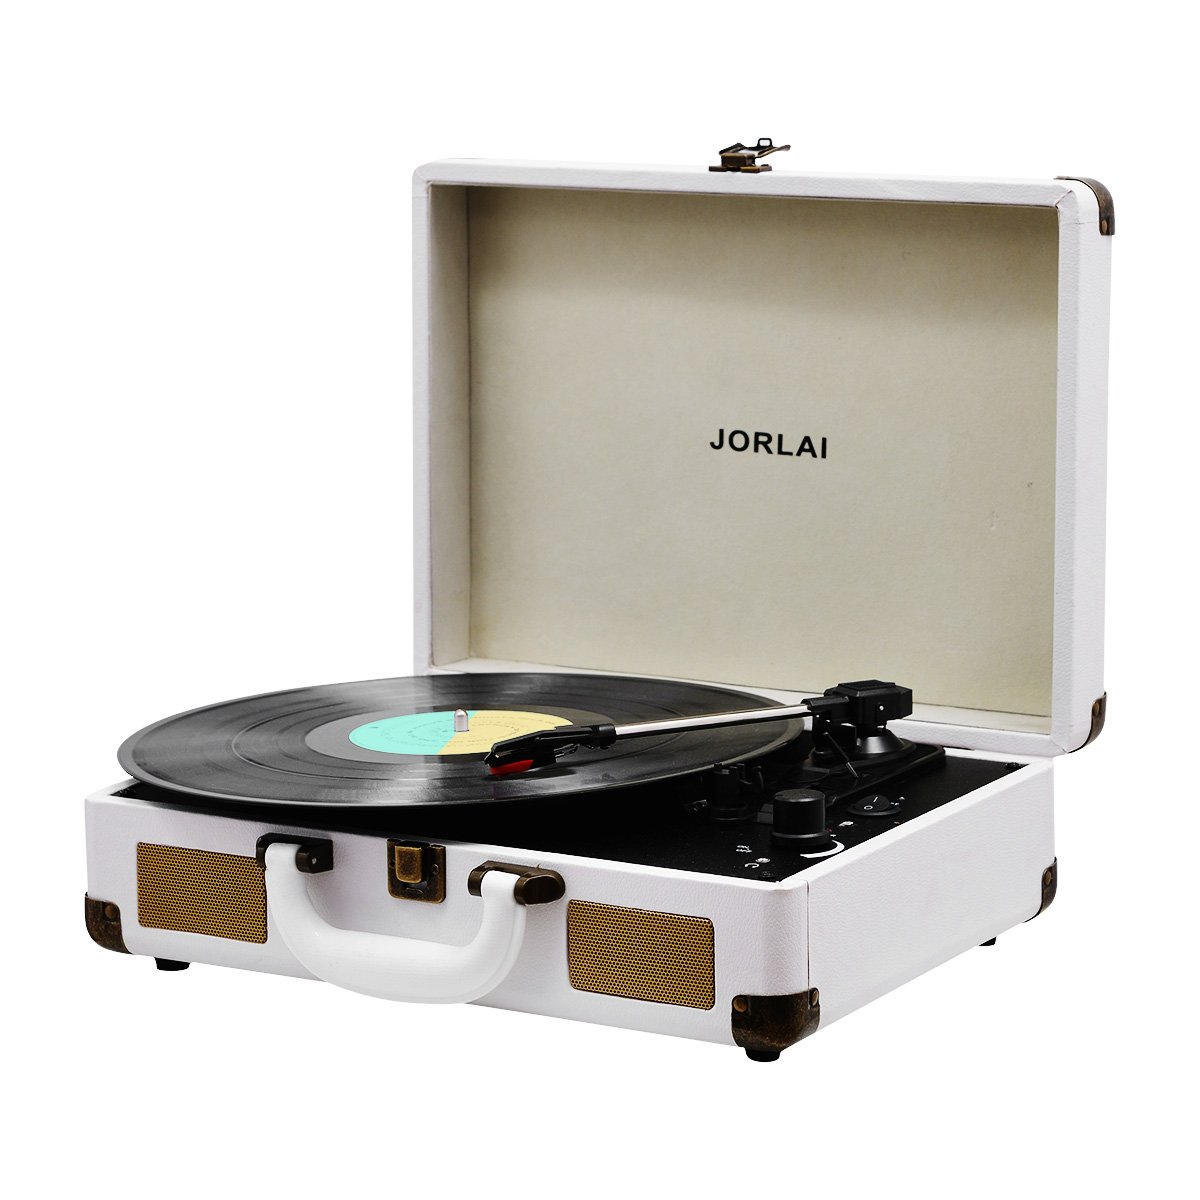 Vinyl Record Player JORLAI Turntable, 3 Speed Bluetooth Record Player Suitcase with Built in Speakers/ Rechargable Battery/ Vinyl-to-MP3 Recording/ Headphone Jack/ Aux Input/ RCA Line Out - White